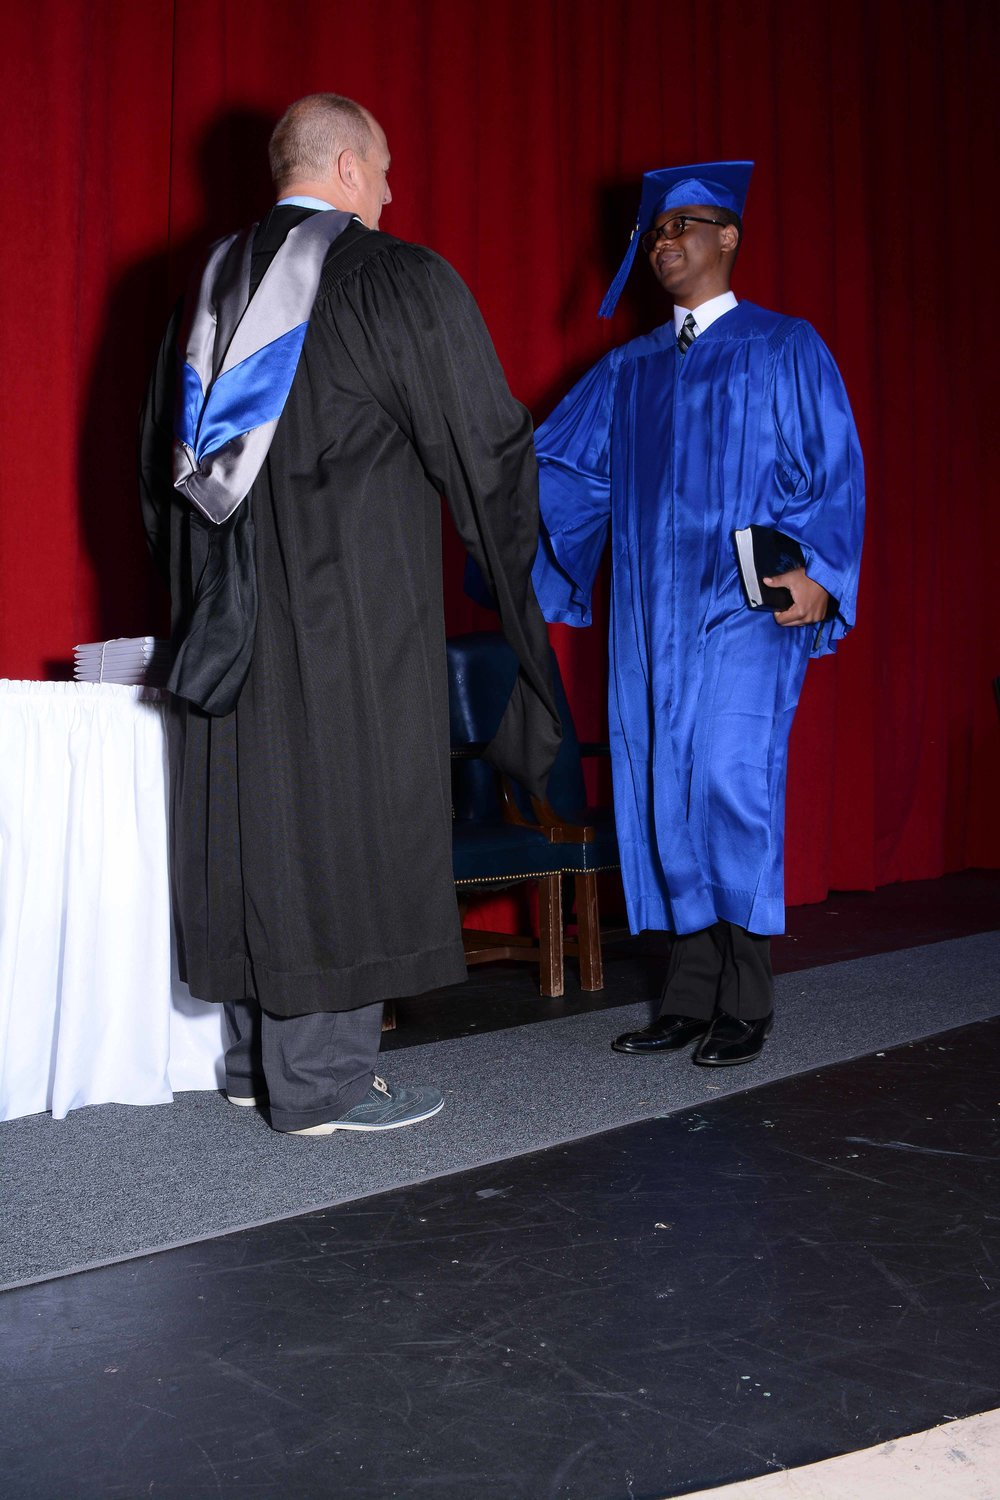 May14 Commencement168.jpg